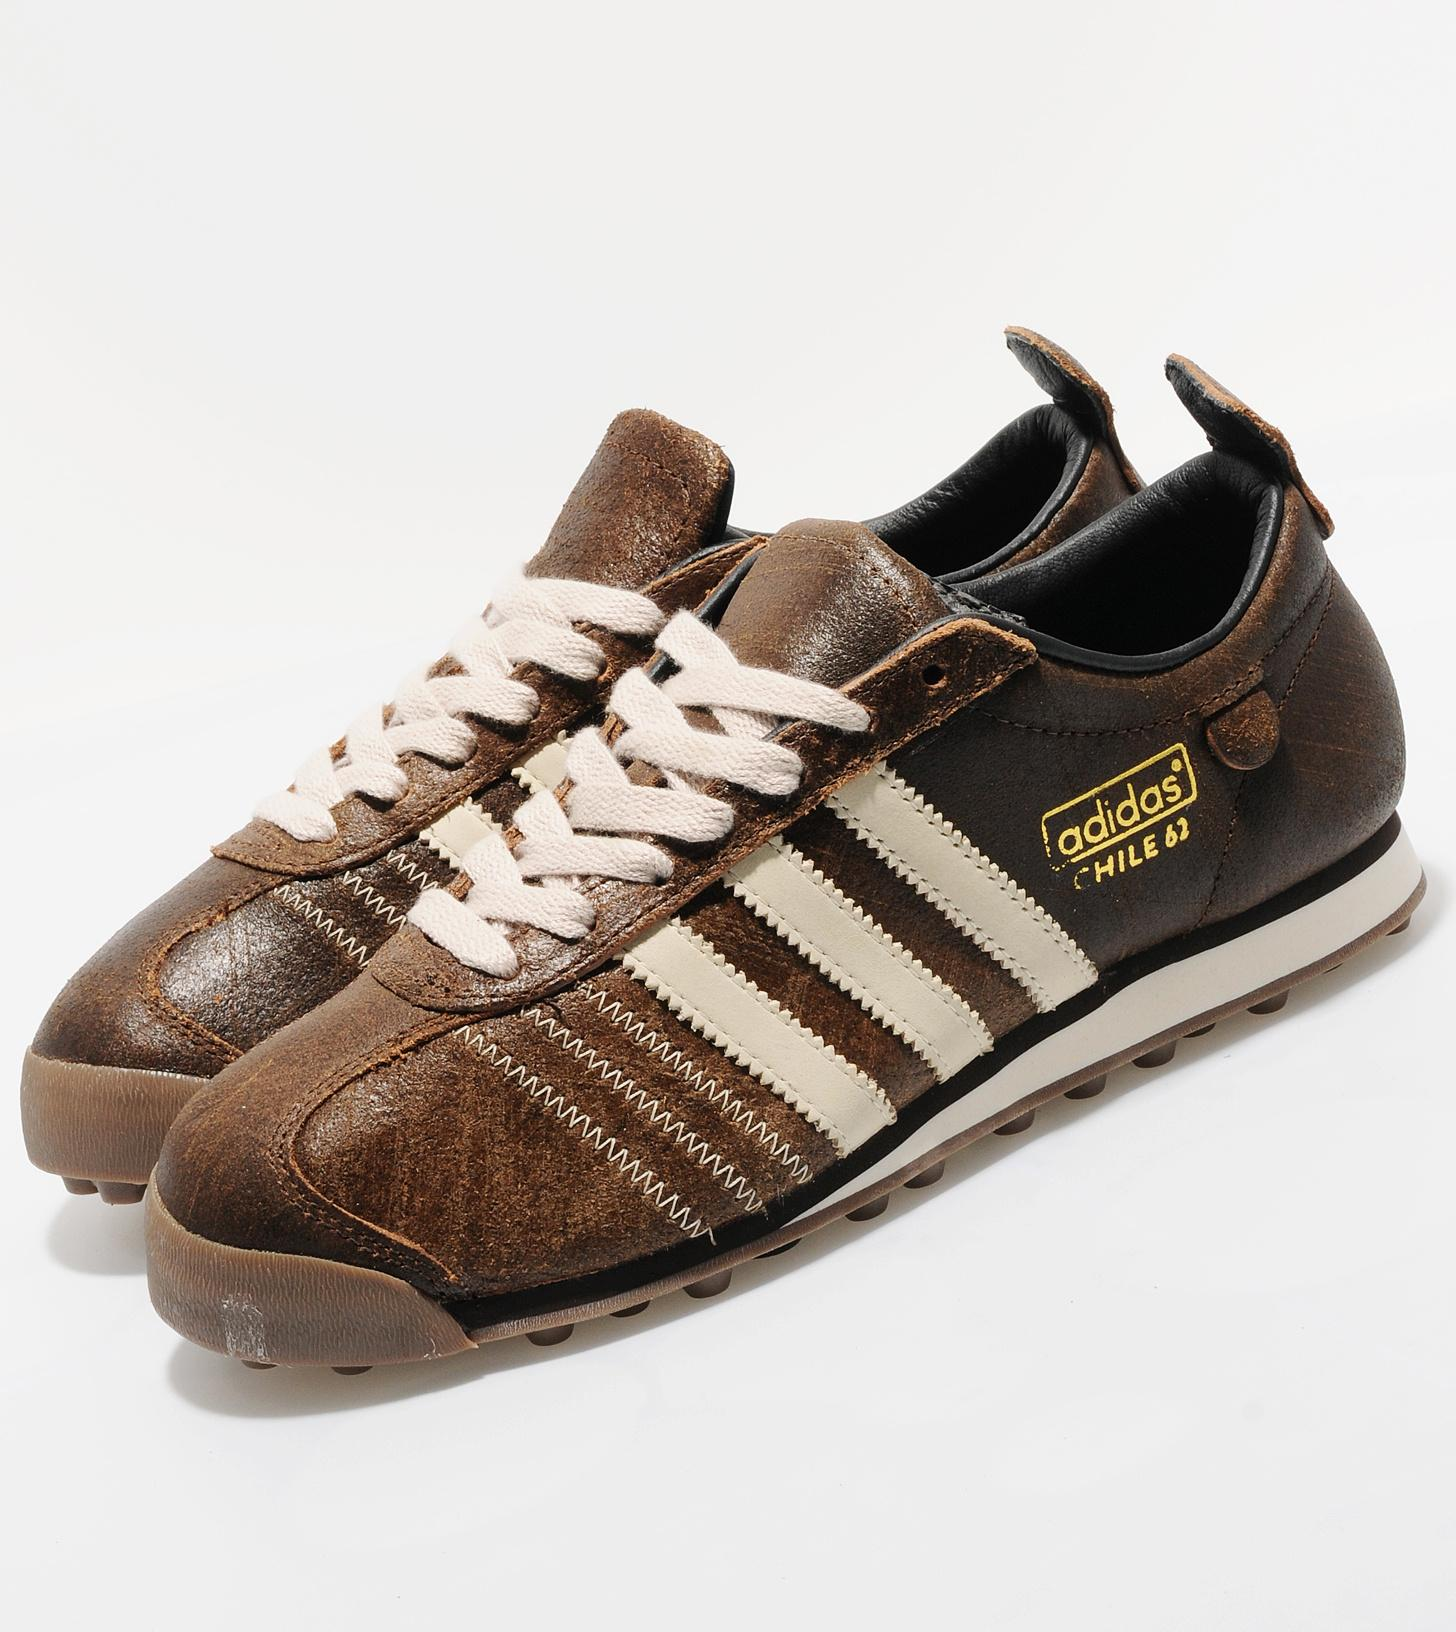 Adidas Chile 62 – Loaded with a Vintage Look!